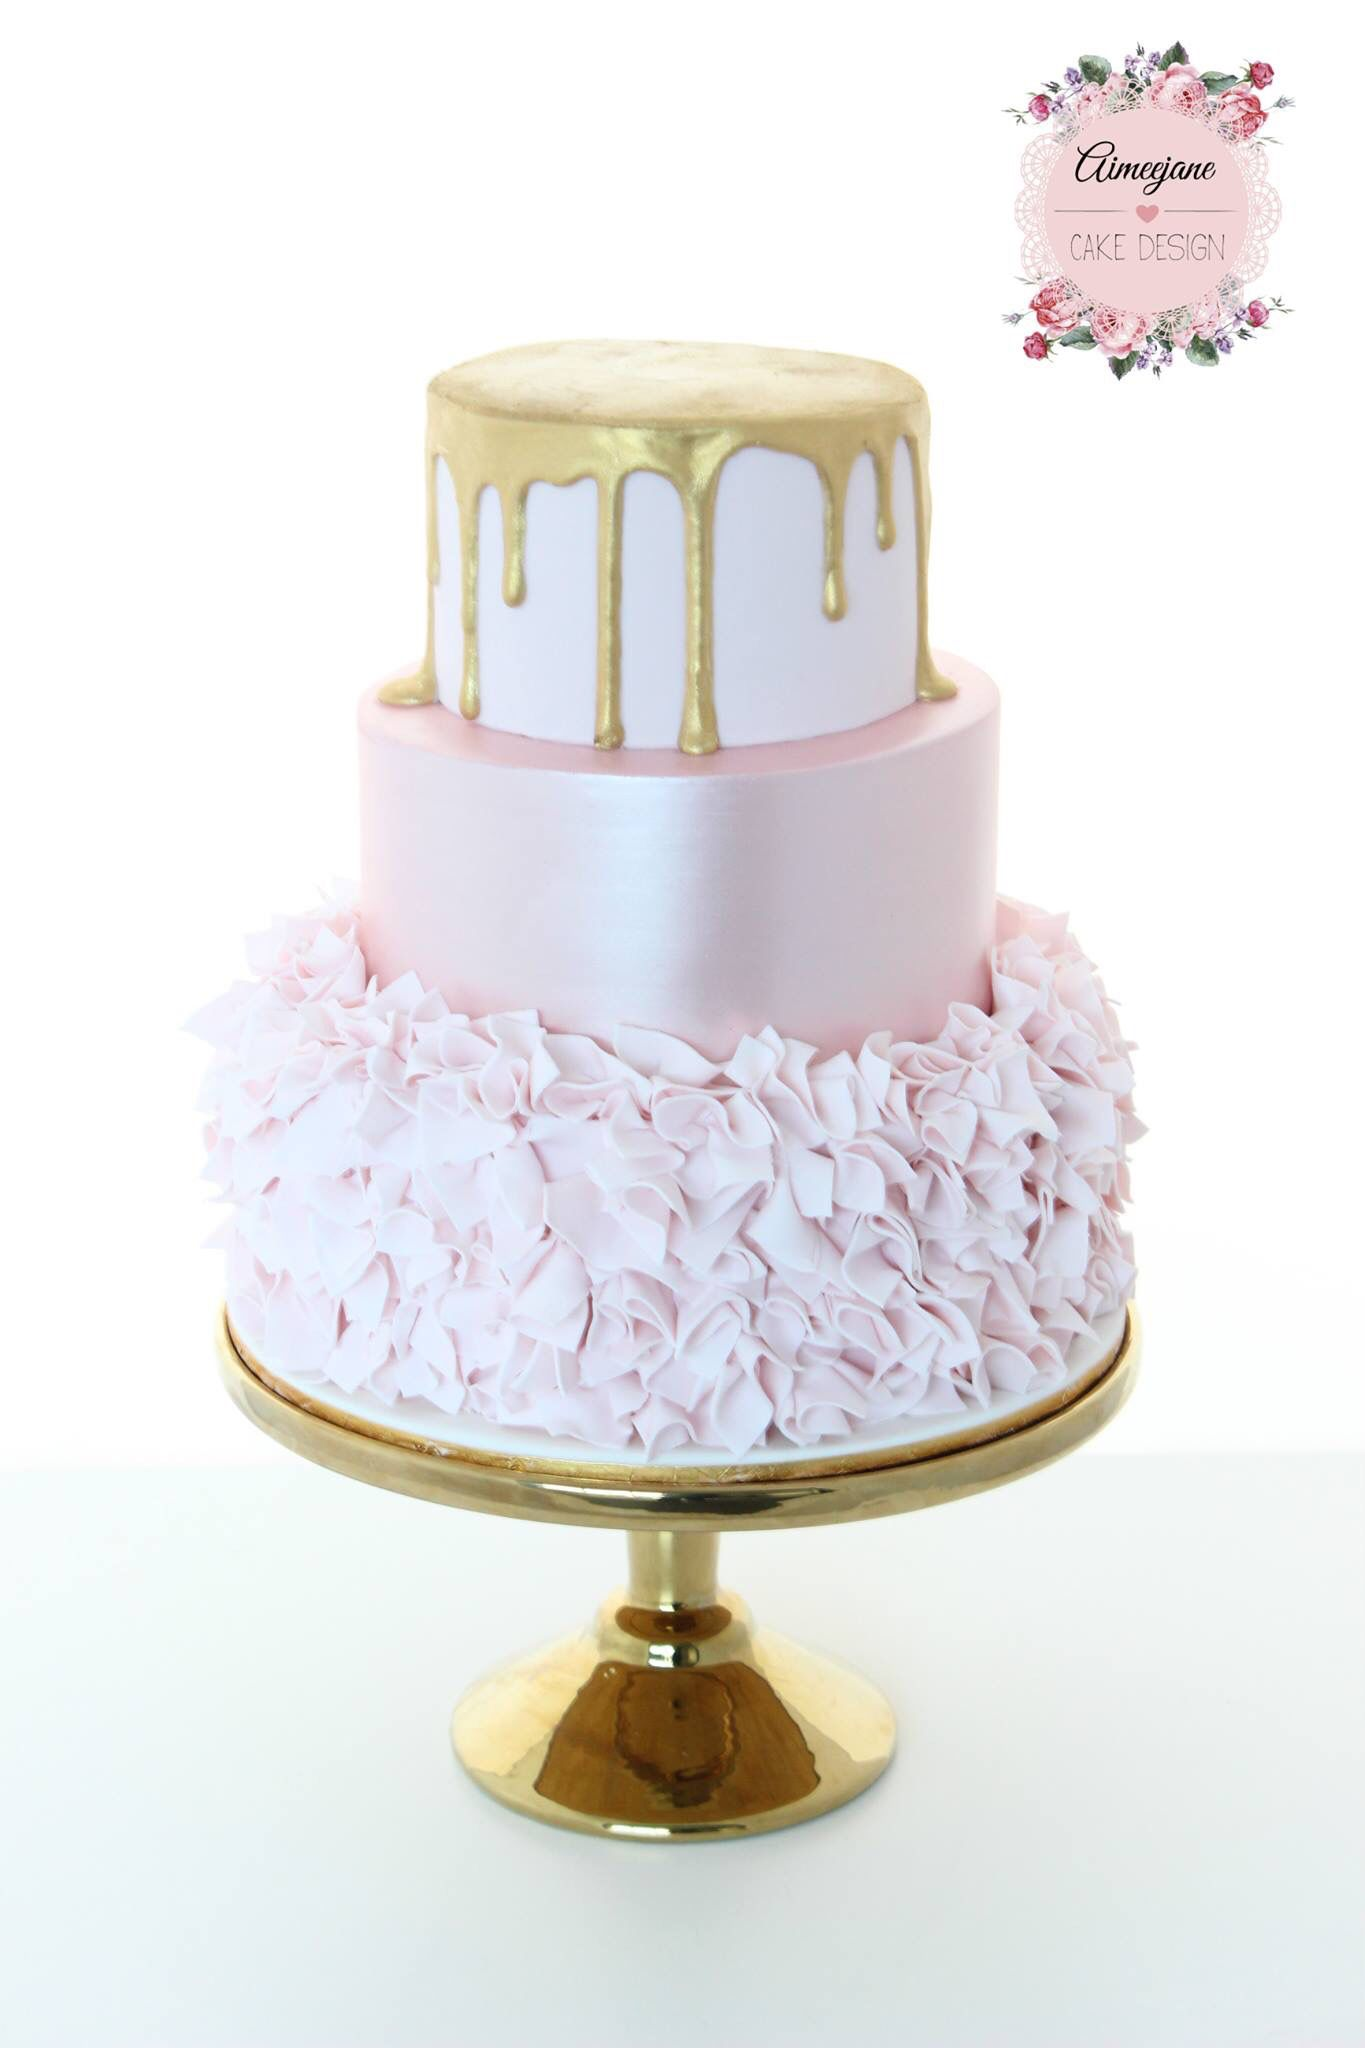 Aimeejane Cake Design gold drip rose pink lustre and ruffles